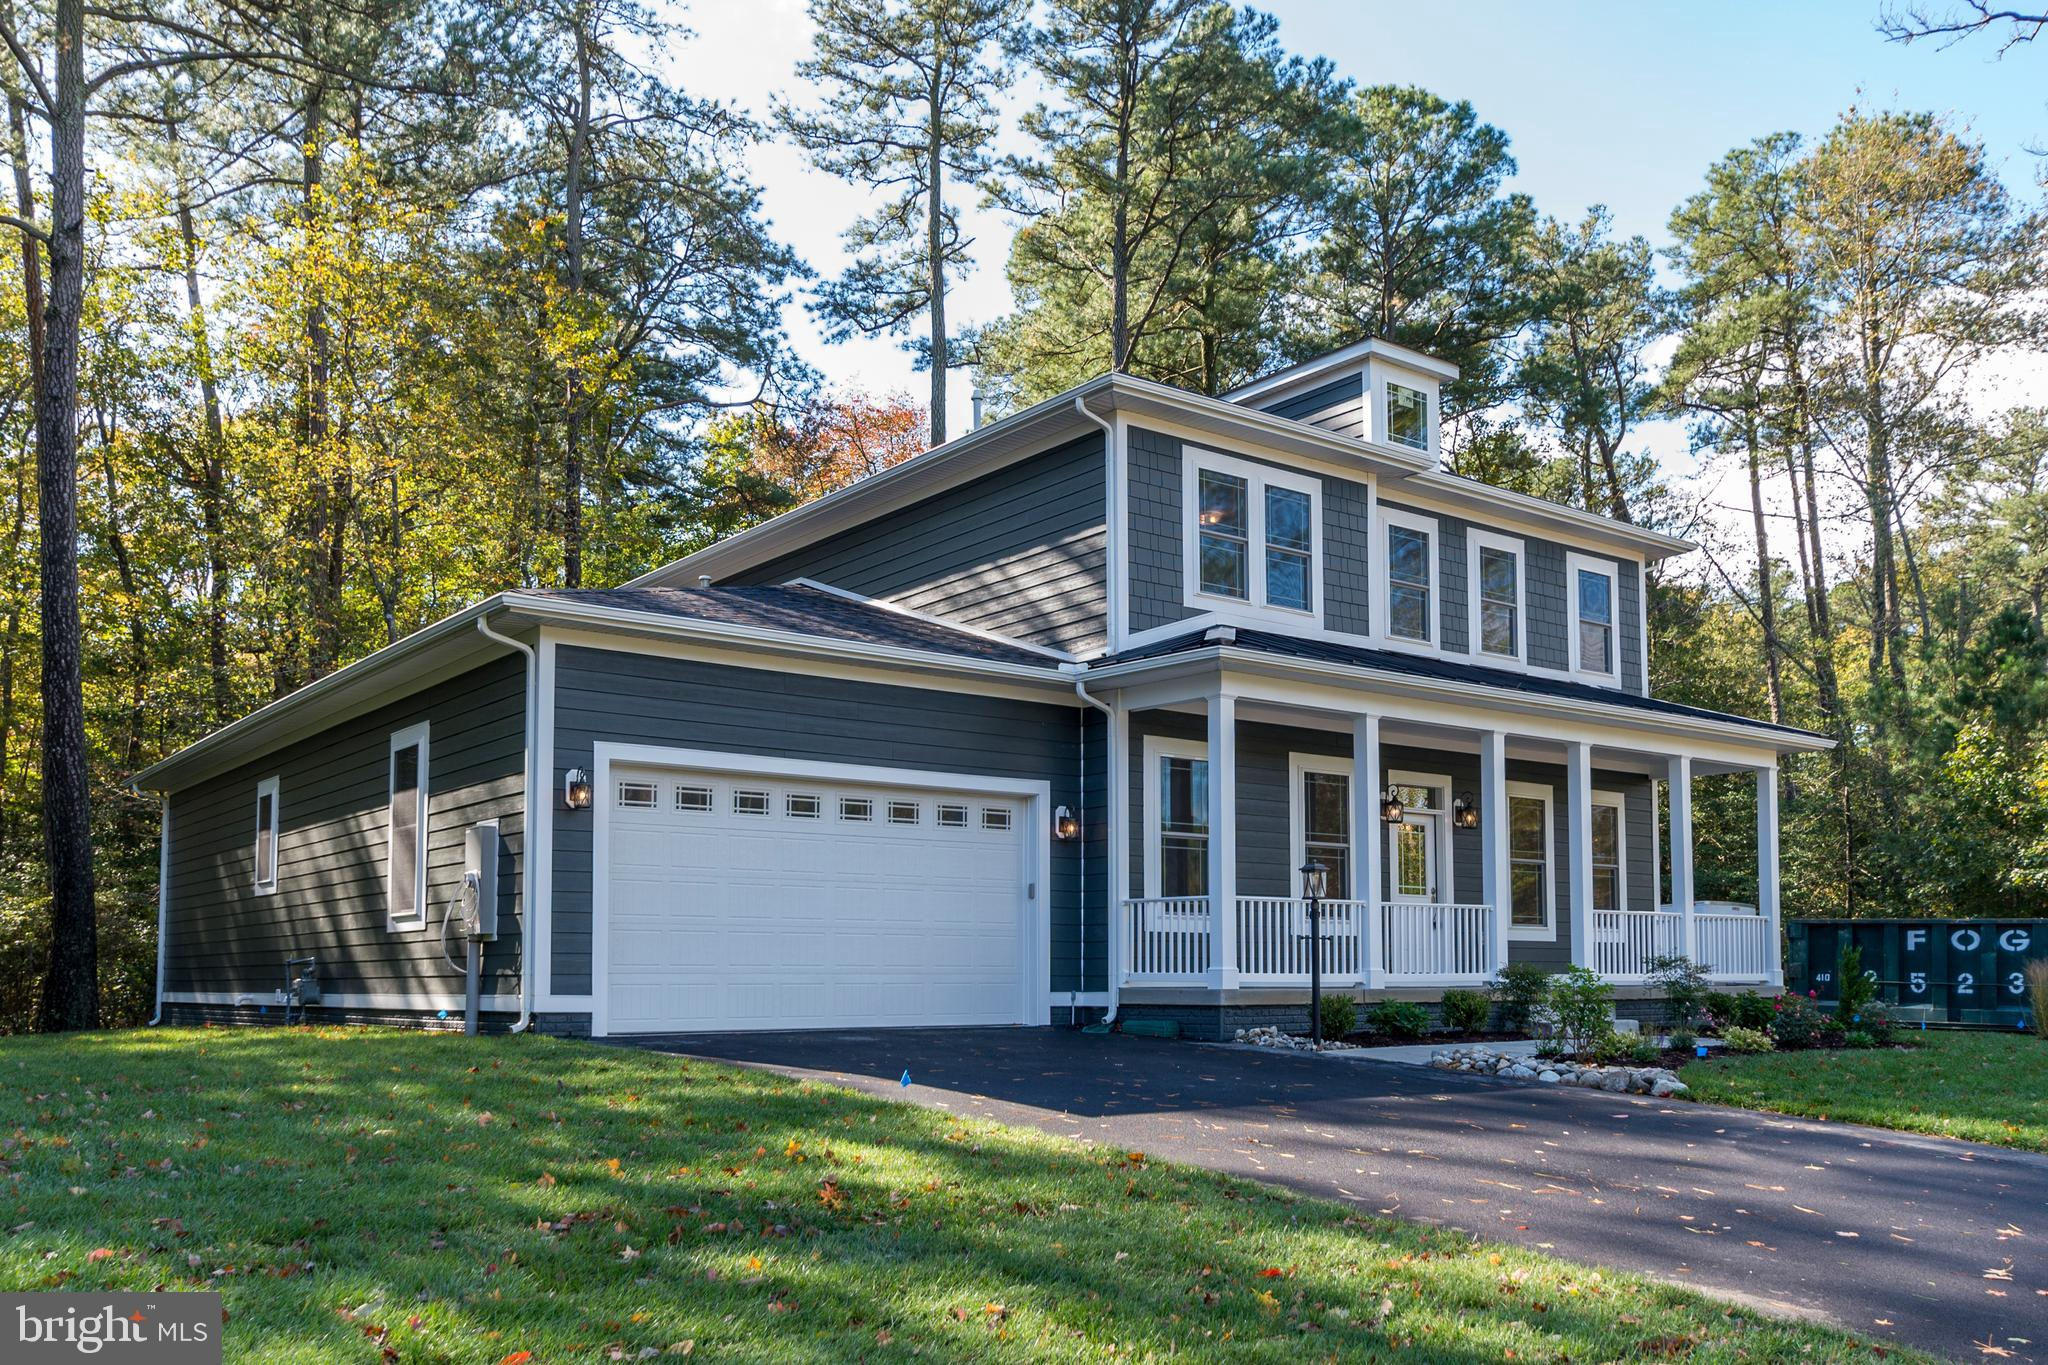 11720 MAID AT ARMS Ln, Berlin, MD, 21811